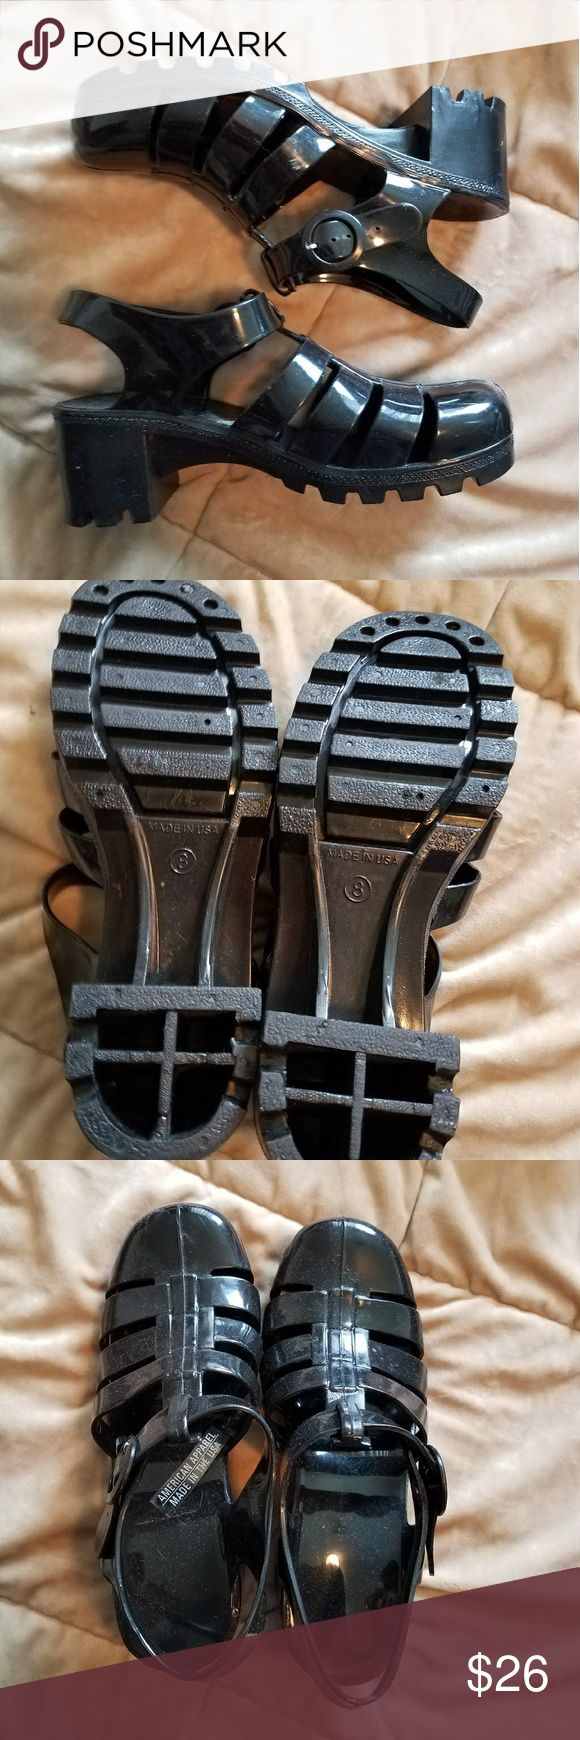 Black jelly sandals american apparel - American Apparel Jelly Shoes American Apparel Jelly Shoes These Jellies Are So Cute And Surprisingly